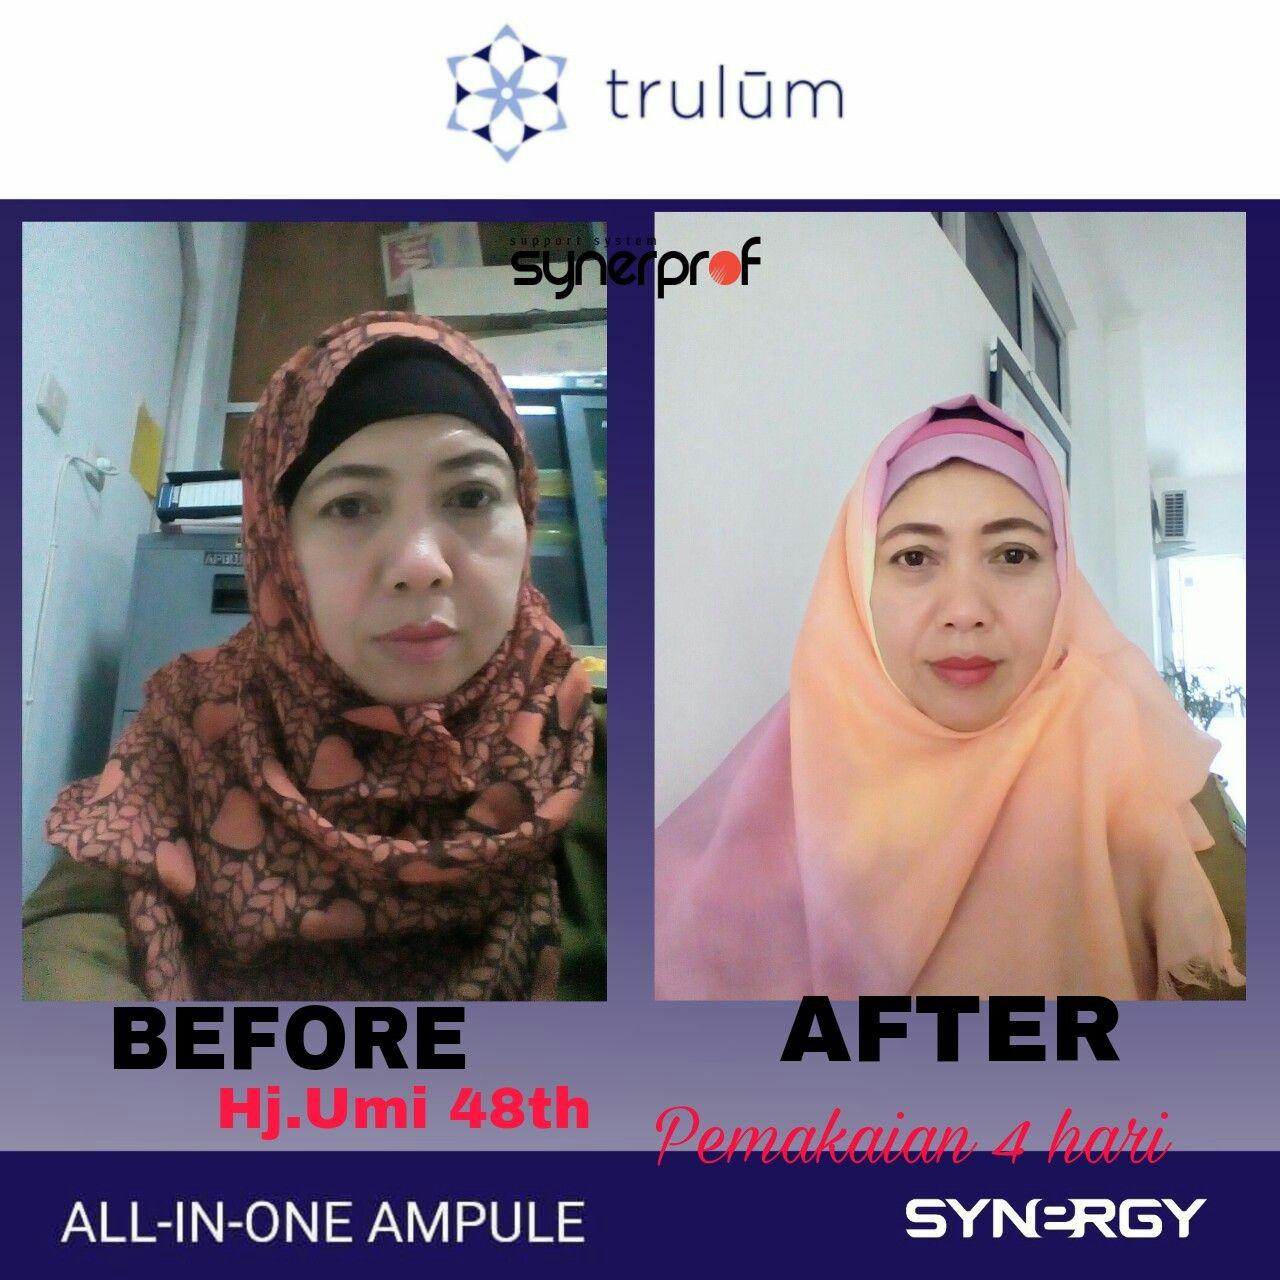 Jual Trulum All In One Ampoule Di Batu Putih, Berau WA: 08112338376